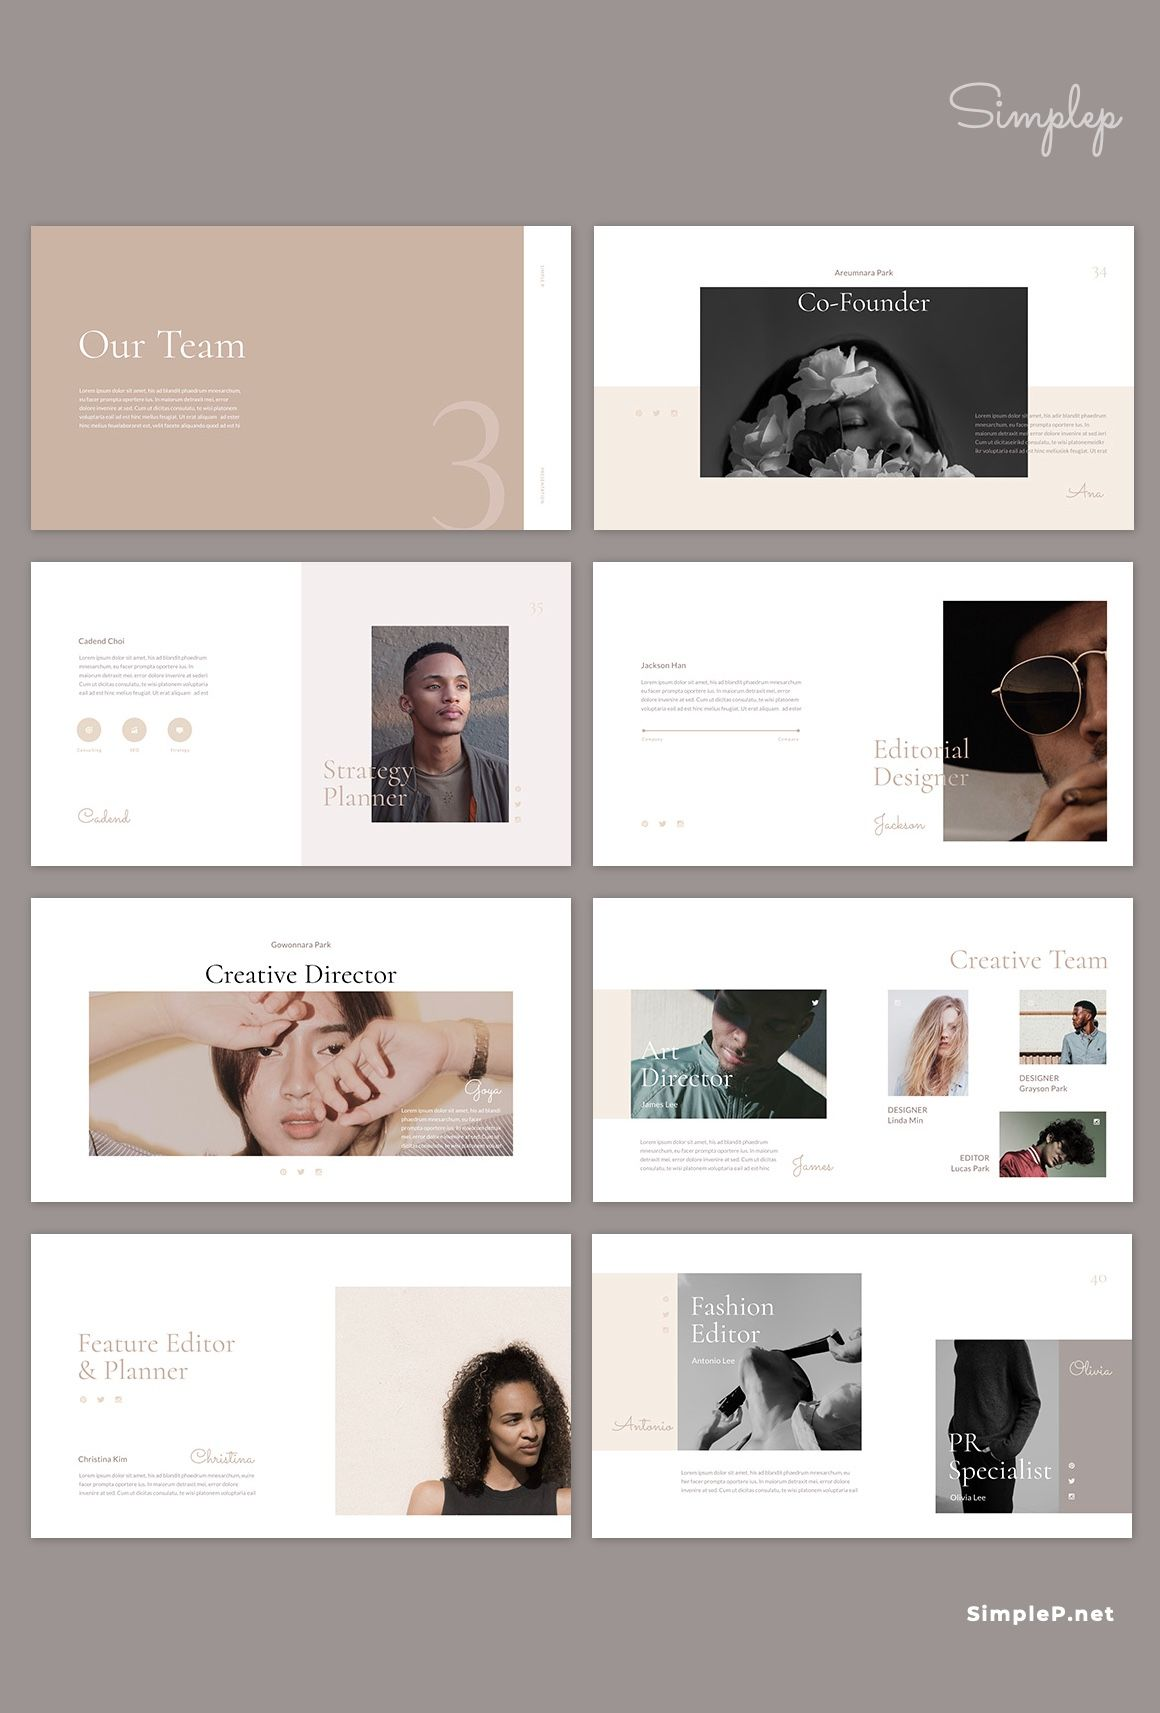 ✨Neutral✨ PowerPoint Template is a gorgeous presentation to show your project & ideas. #ppt #powerpoint #presentation #template #project #business #about #strategy #layout #simplep #neutral #beige #AD #powerpoint